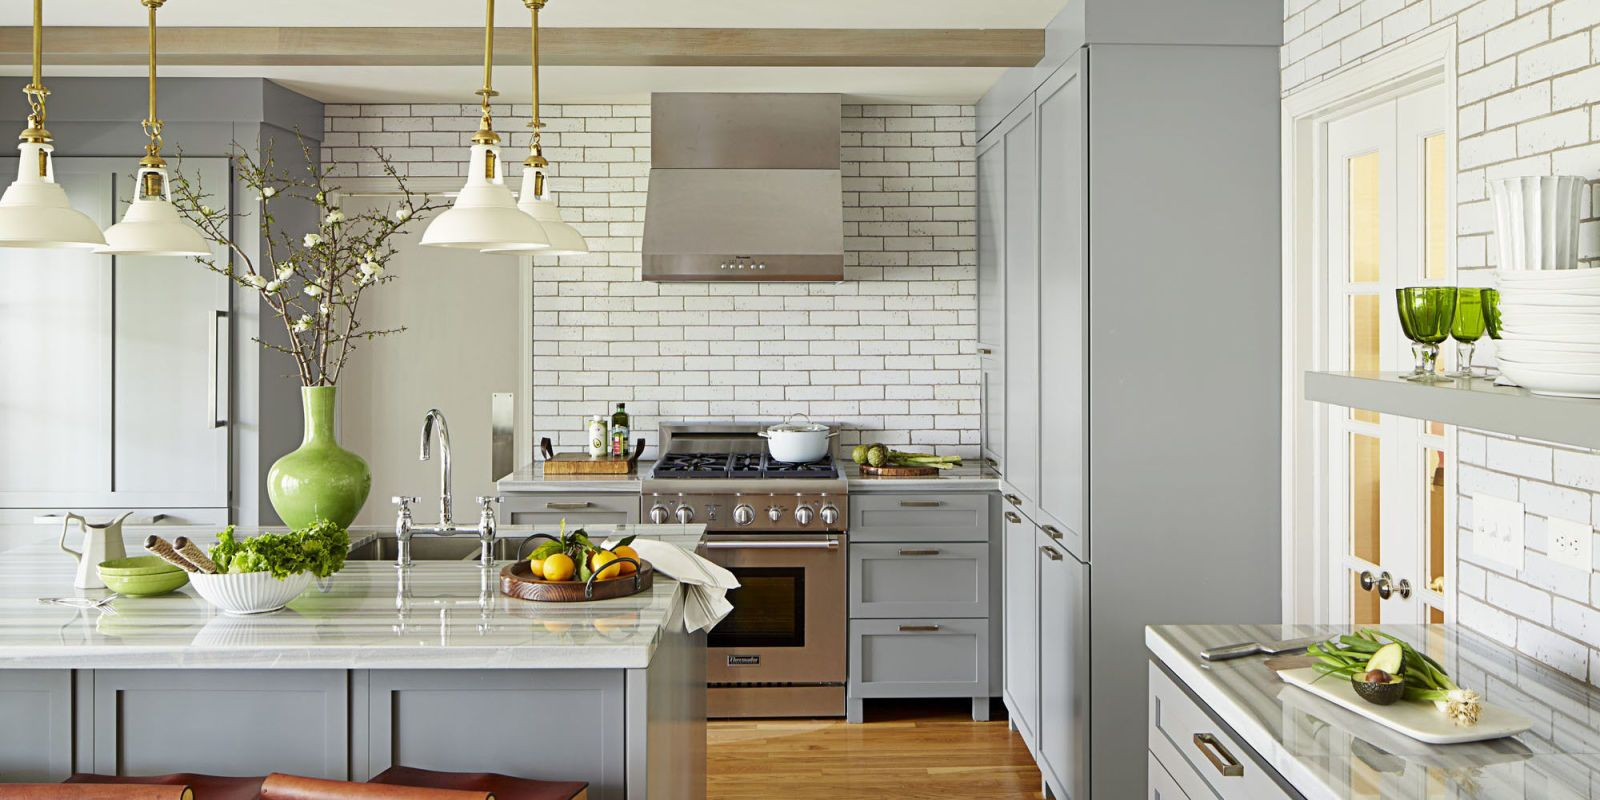 image & 20+ Best Kitchen Countertops Design Ideas - Types of Kitchen Counters